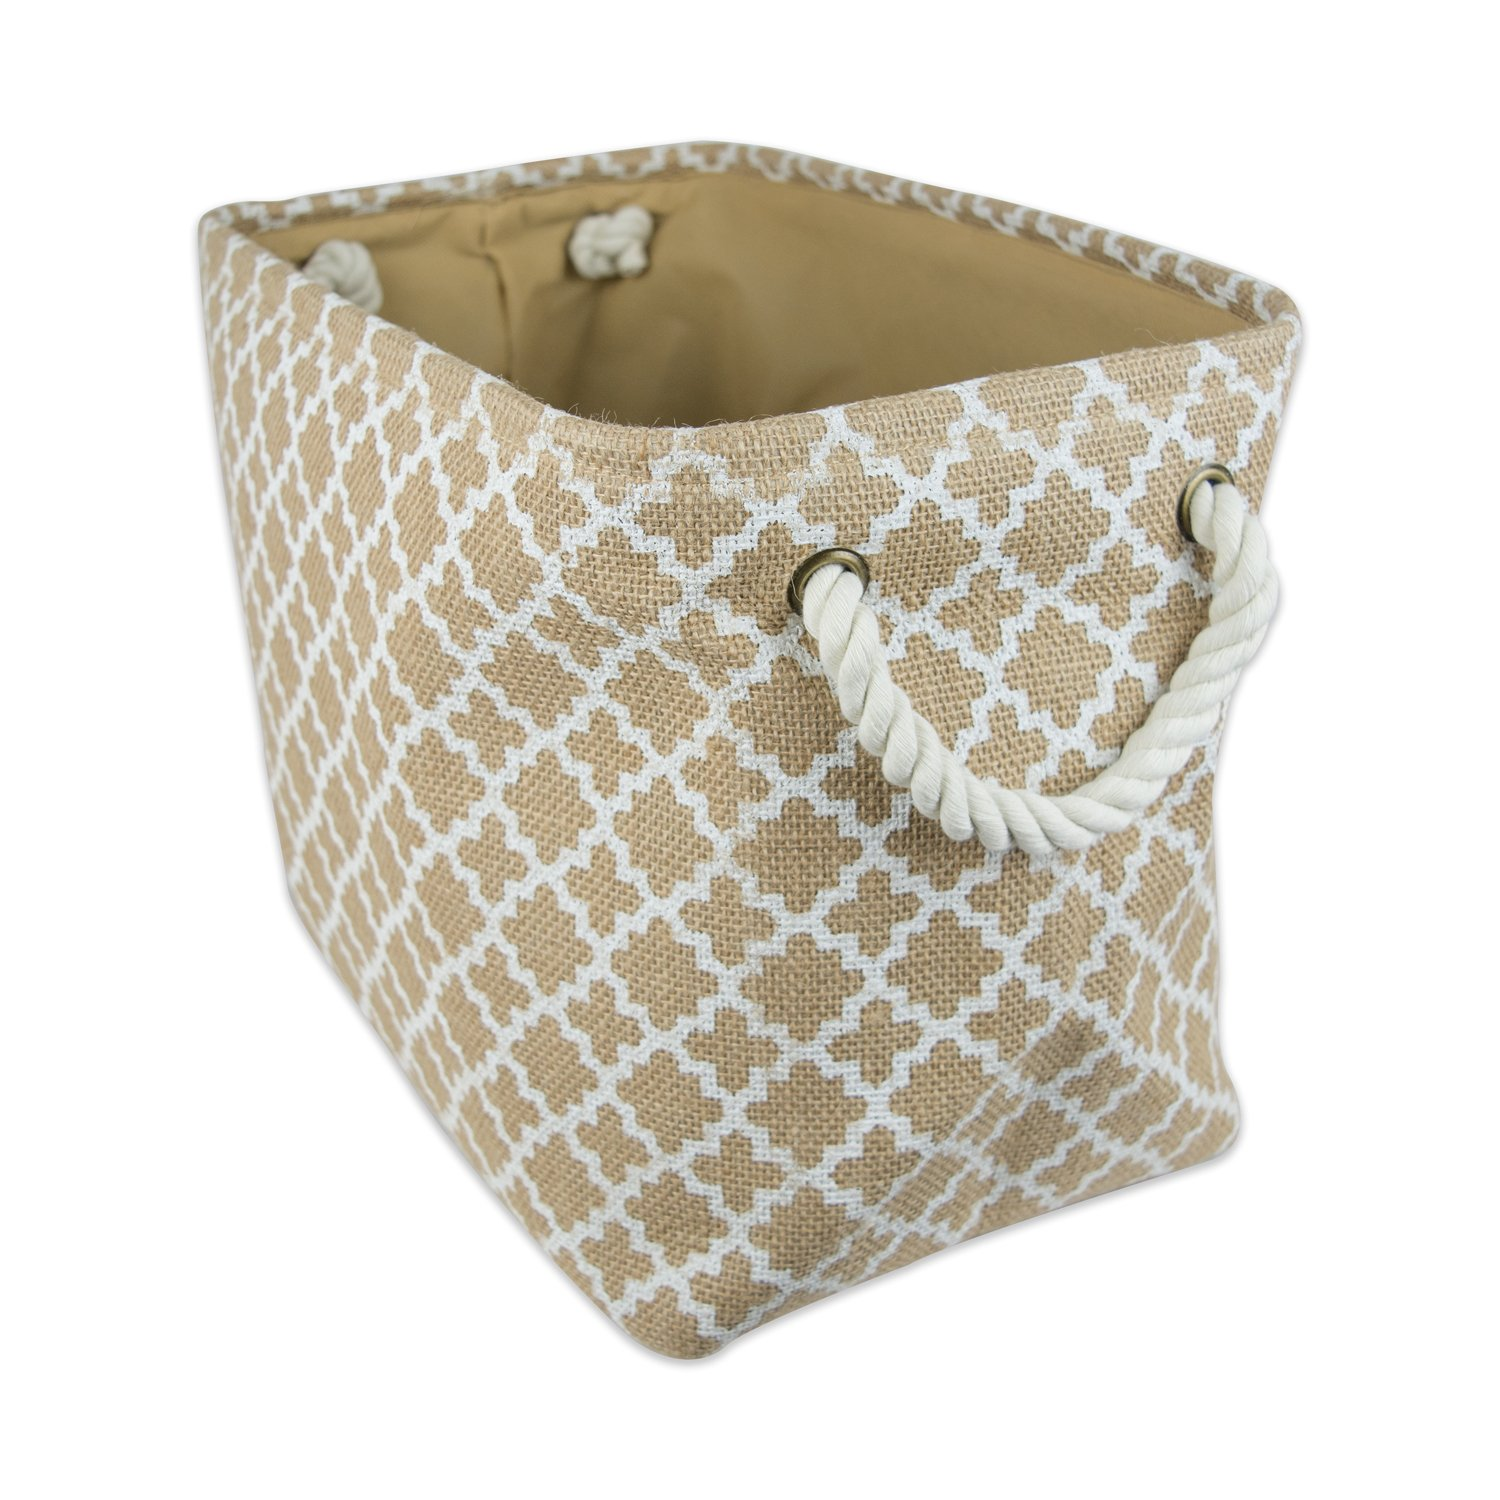 "DII Collapsible Burlap Storage Basket or Bin with Durable Cotton Handles, Home Organizational Solution for Office, Bedroom, Closet, Toys, Laundry (Large – 18x12x15""), White Lattice Outline"